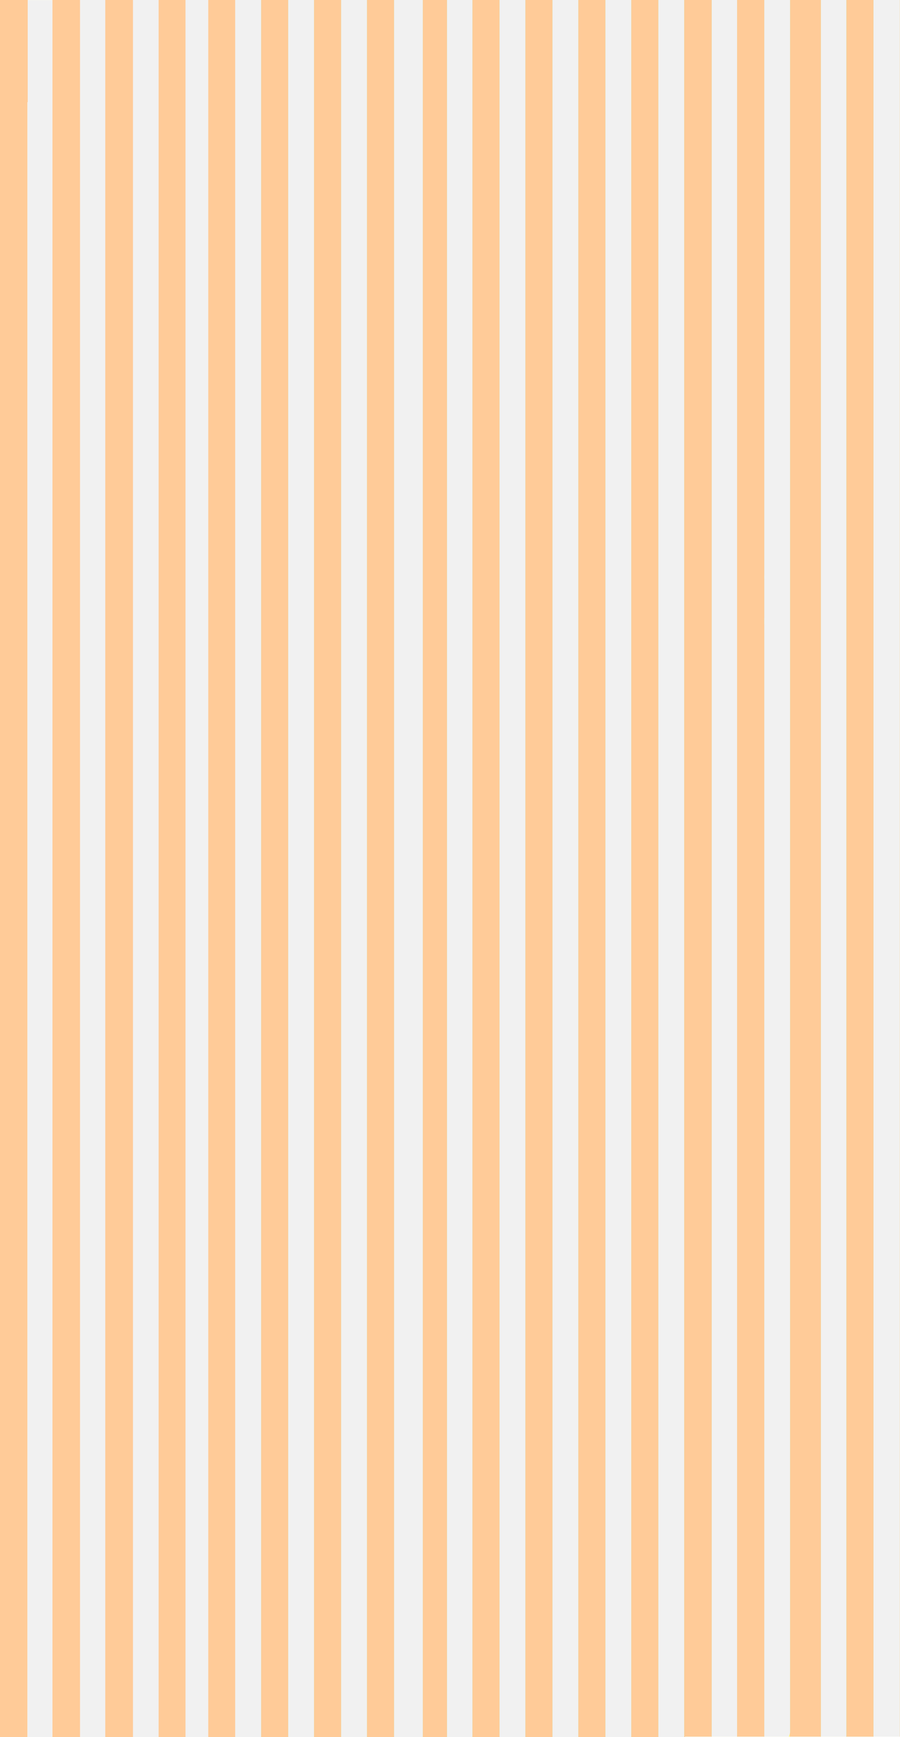 4: Pastel Orange Custom Box Background by Bgs-and-banners on DeviantArt